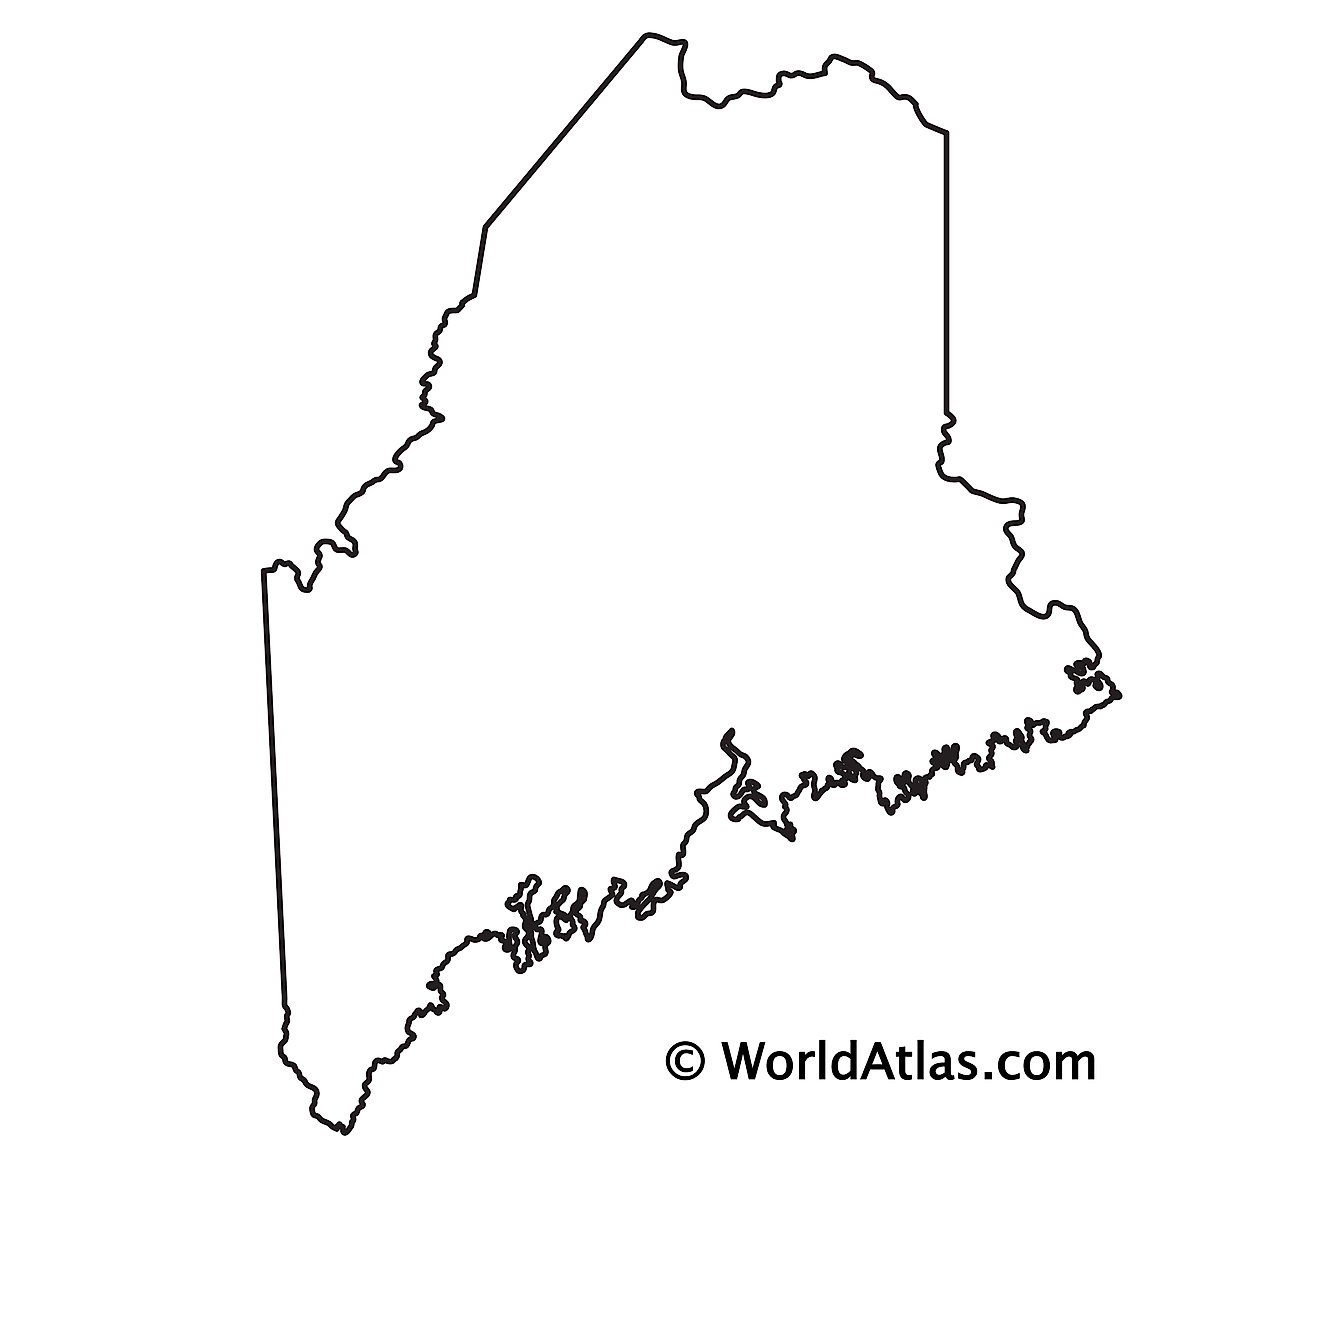 Blank Outline Map of Maine